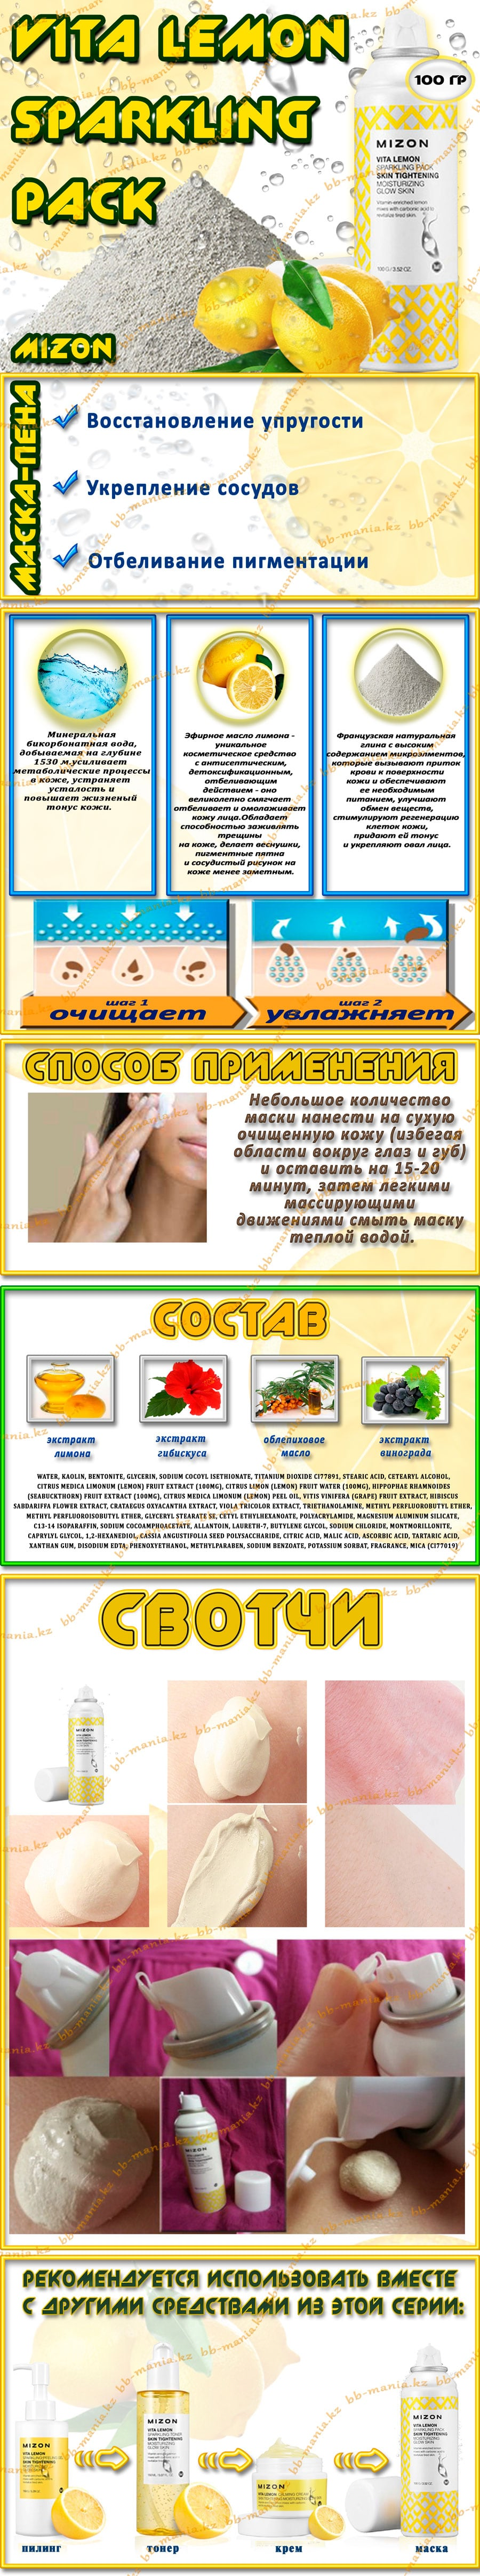 MIZON-Vita-Lemon-Sparkling-Pack-полная